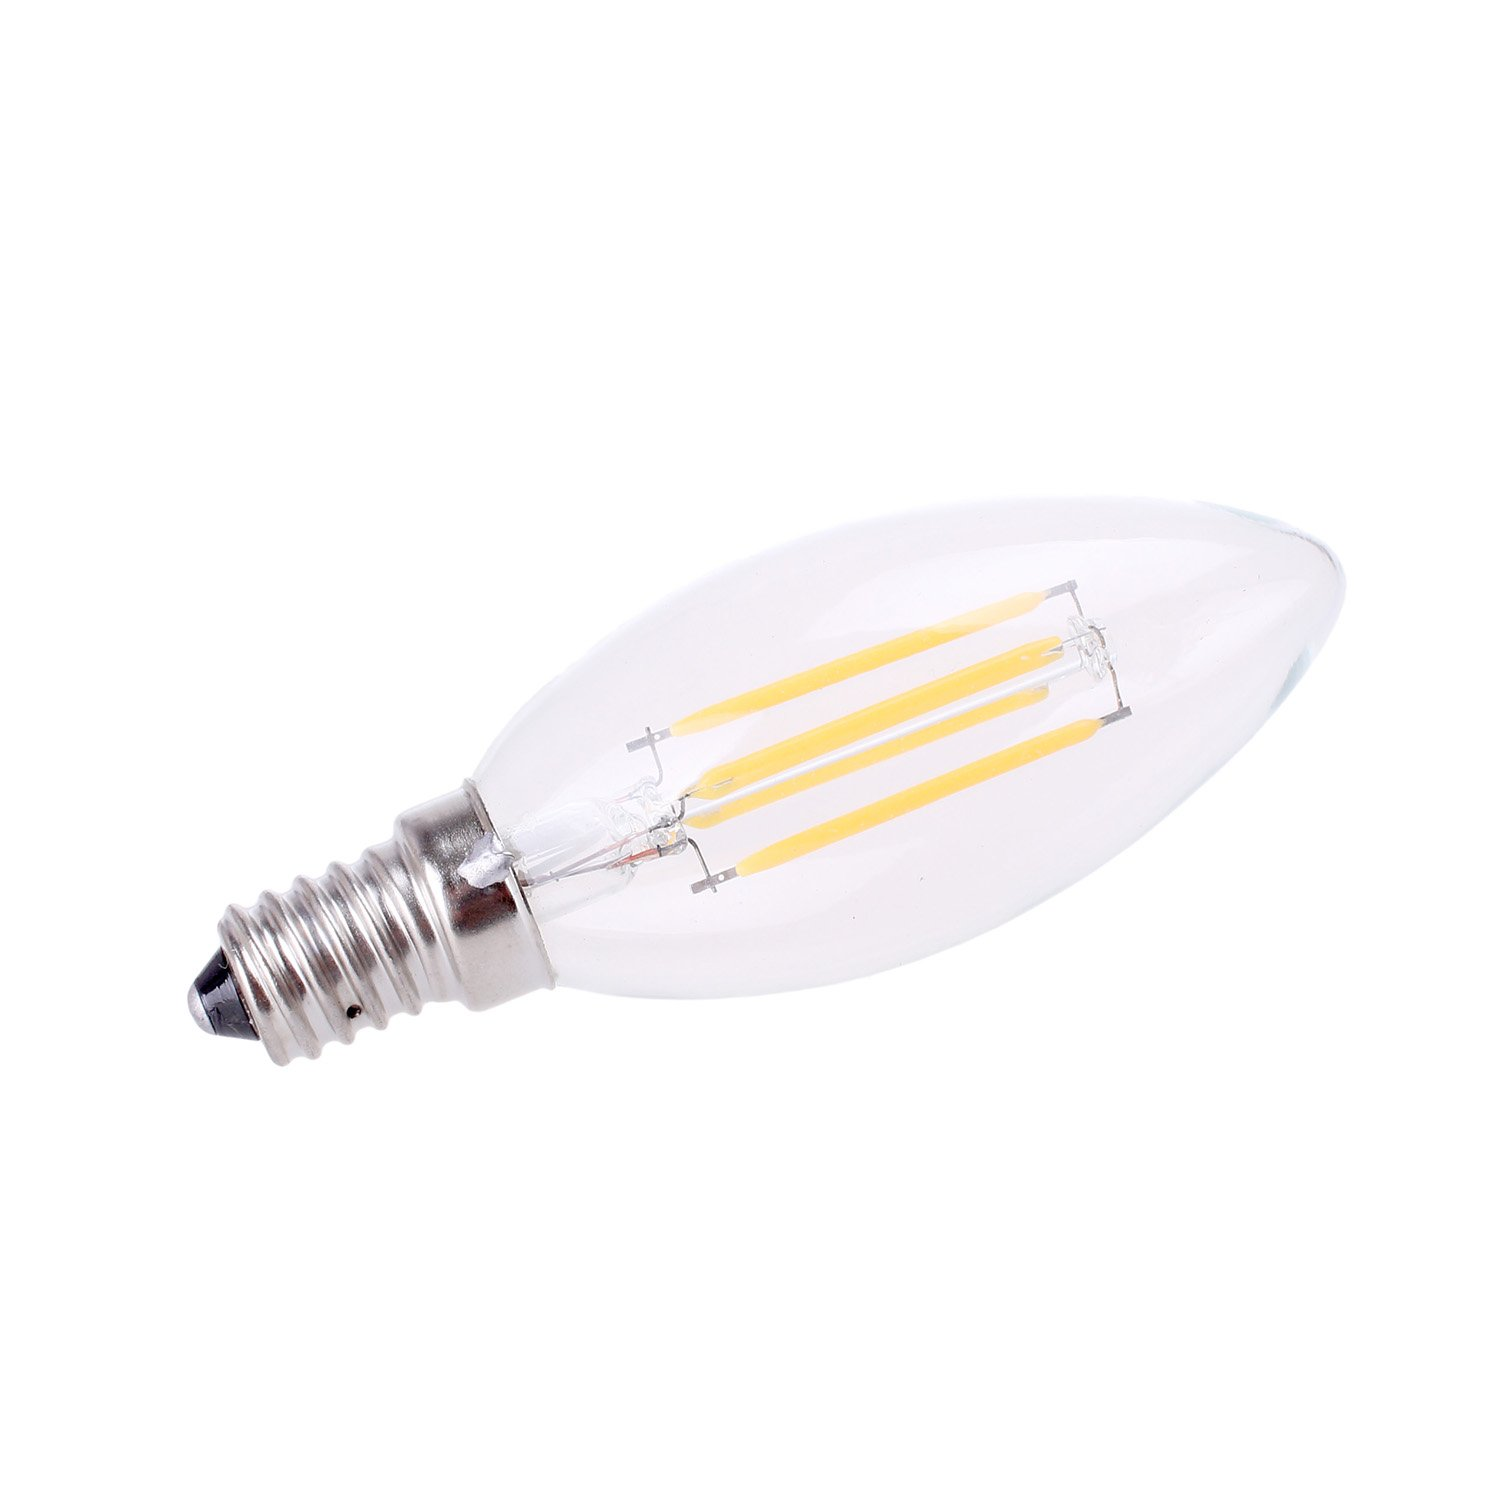 le warm us lighting white can base dimmable equivalent light why x led ever bulbs ww